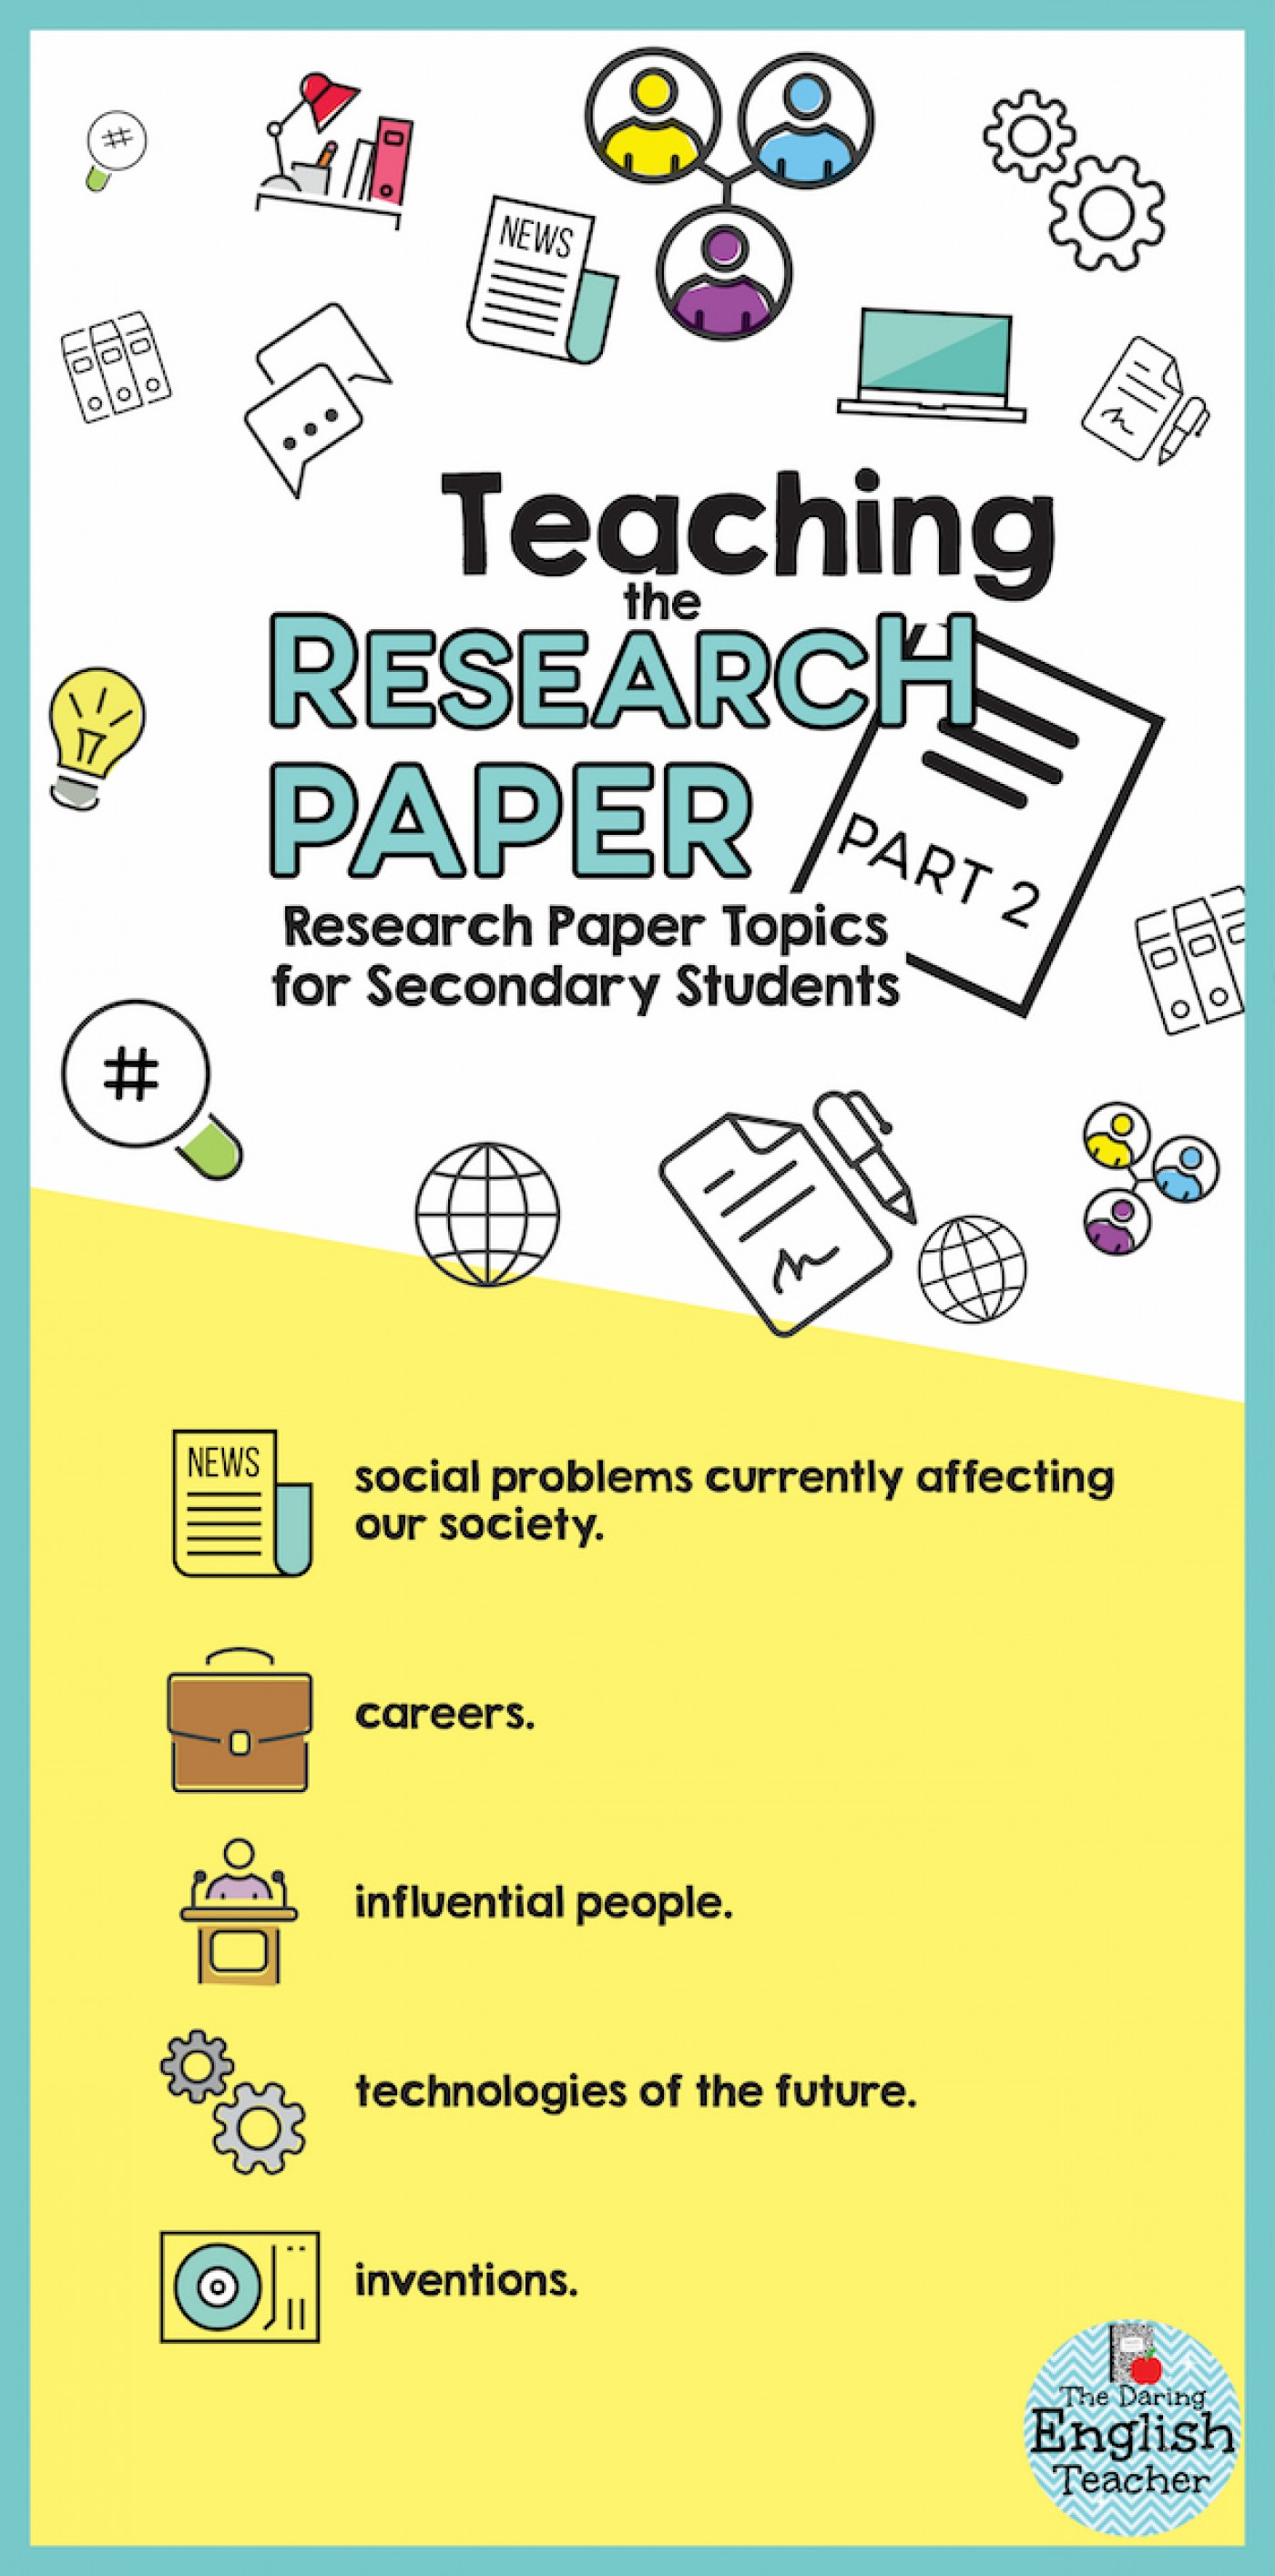 020 Infographic2bp22b2 Research Paper Topic For Unusual A Topics In Sociology On Frankenstein Education The Philippines 1400